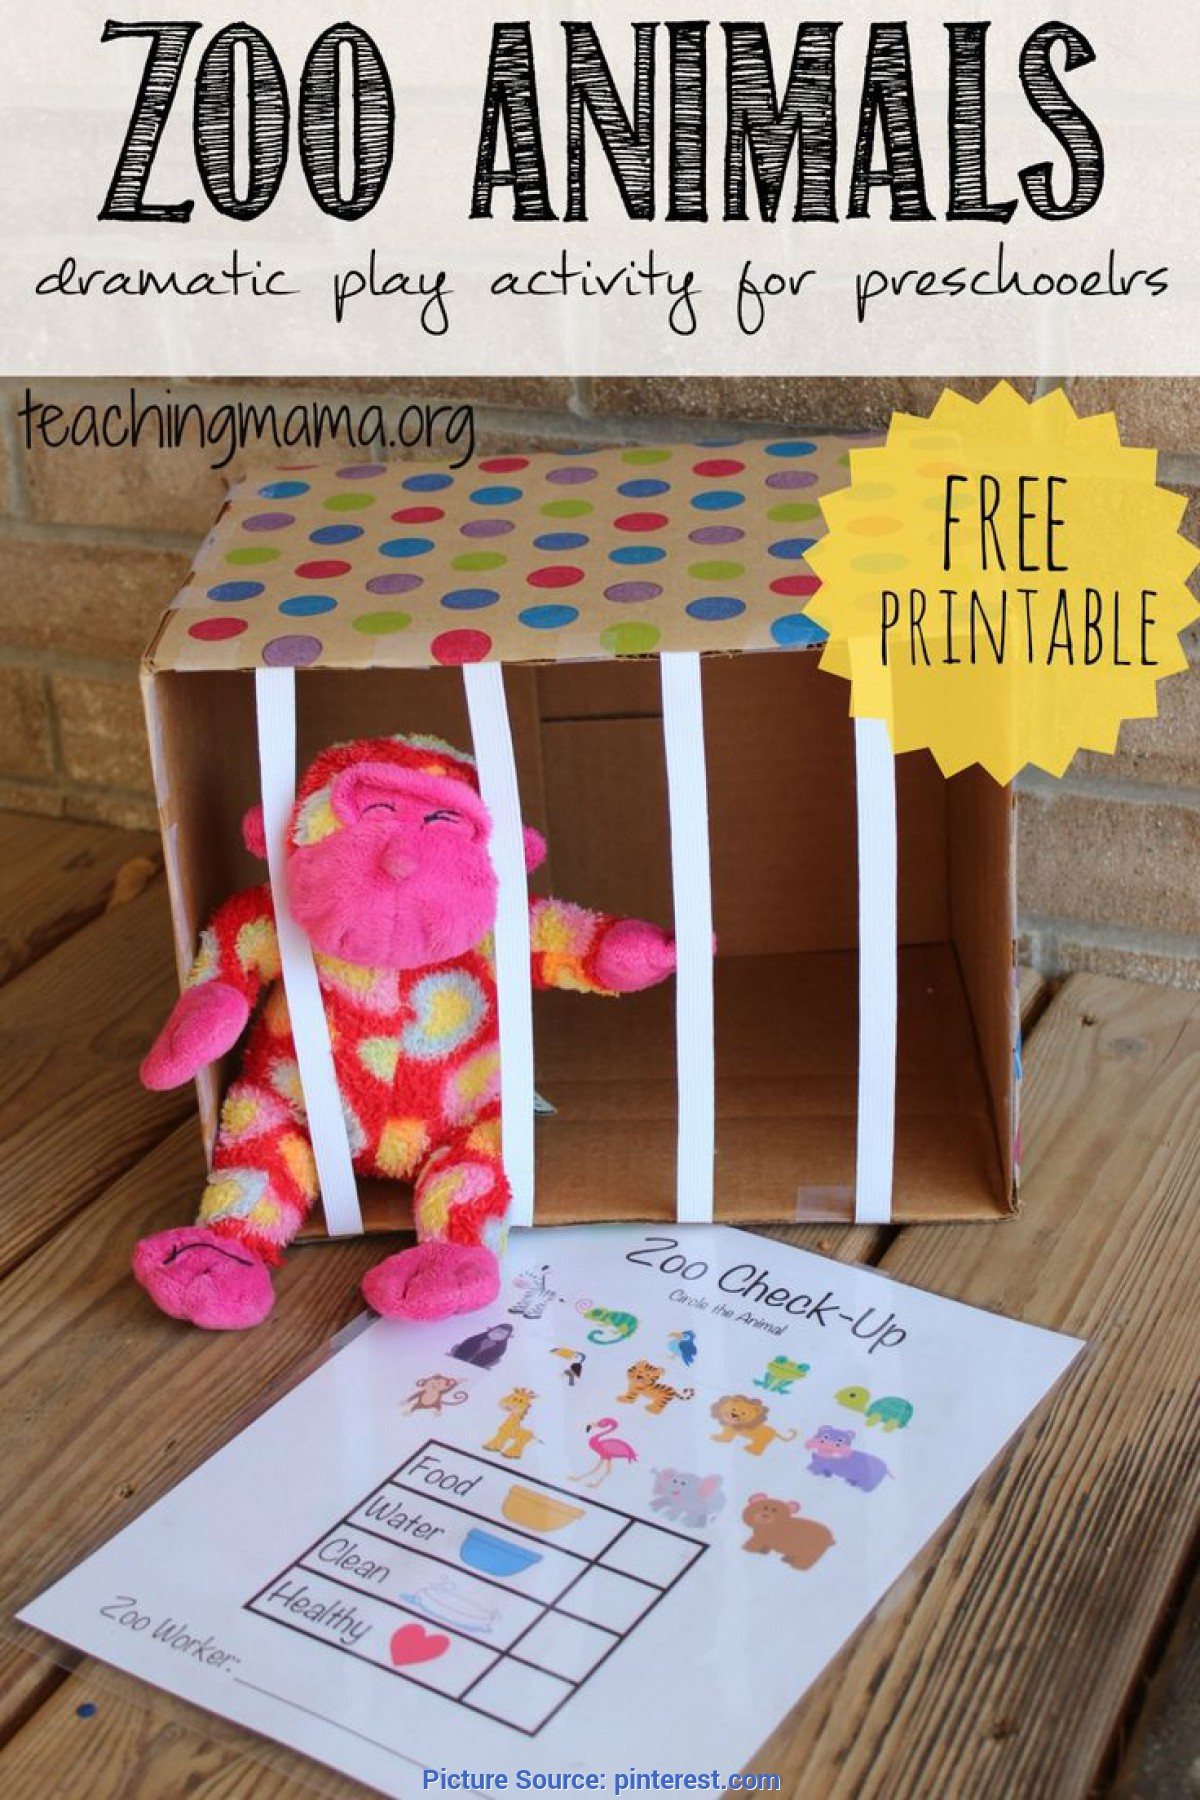 Regular Dramatic Play Lesson Plans For Preschoolers Zoo Animals - Dramatic Play Activity | Dramatic Play, Zoos An